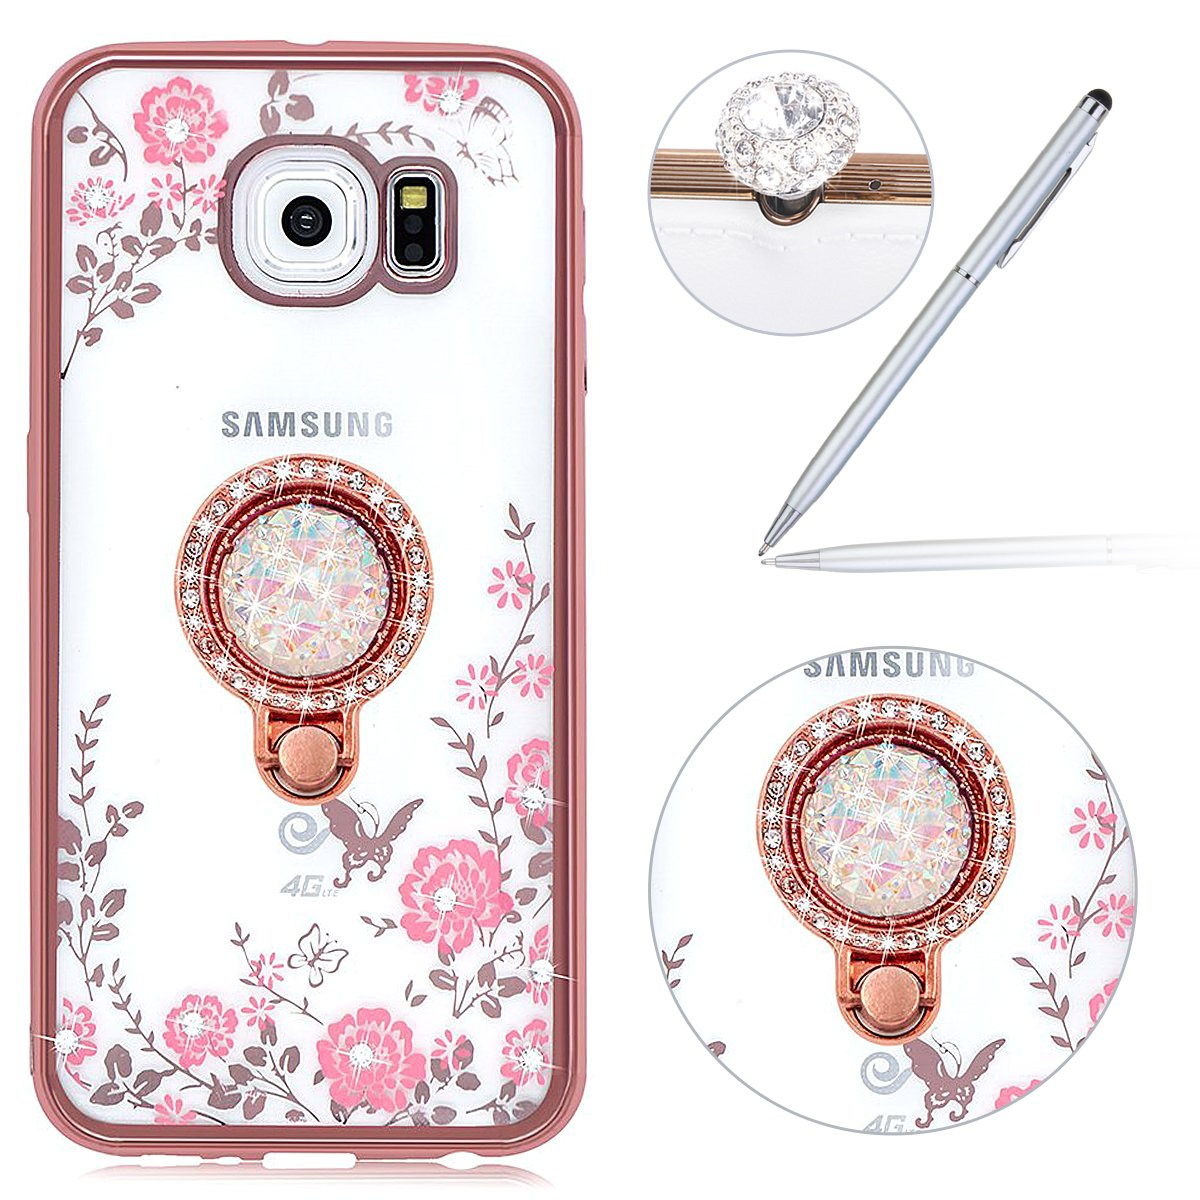 Felfy Galaxy S7 Case,Galaxy S7 Cover Case, 360 Degree Protection Full Body Transparent Clear with Glitter Cover Soft TPU Silicone Flexible Anti-Scratch Abrasion Resistance Cover Case Smart Phone Shell for Samsung Galaxy S7 + 1 Sliver Stylus Pen + Bling Dus